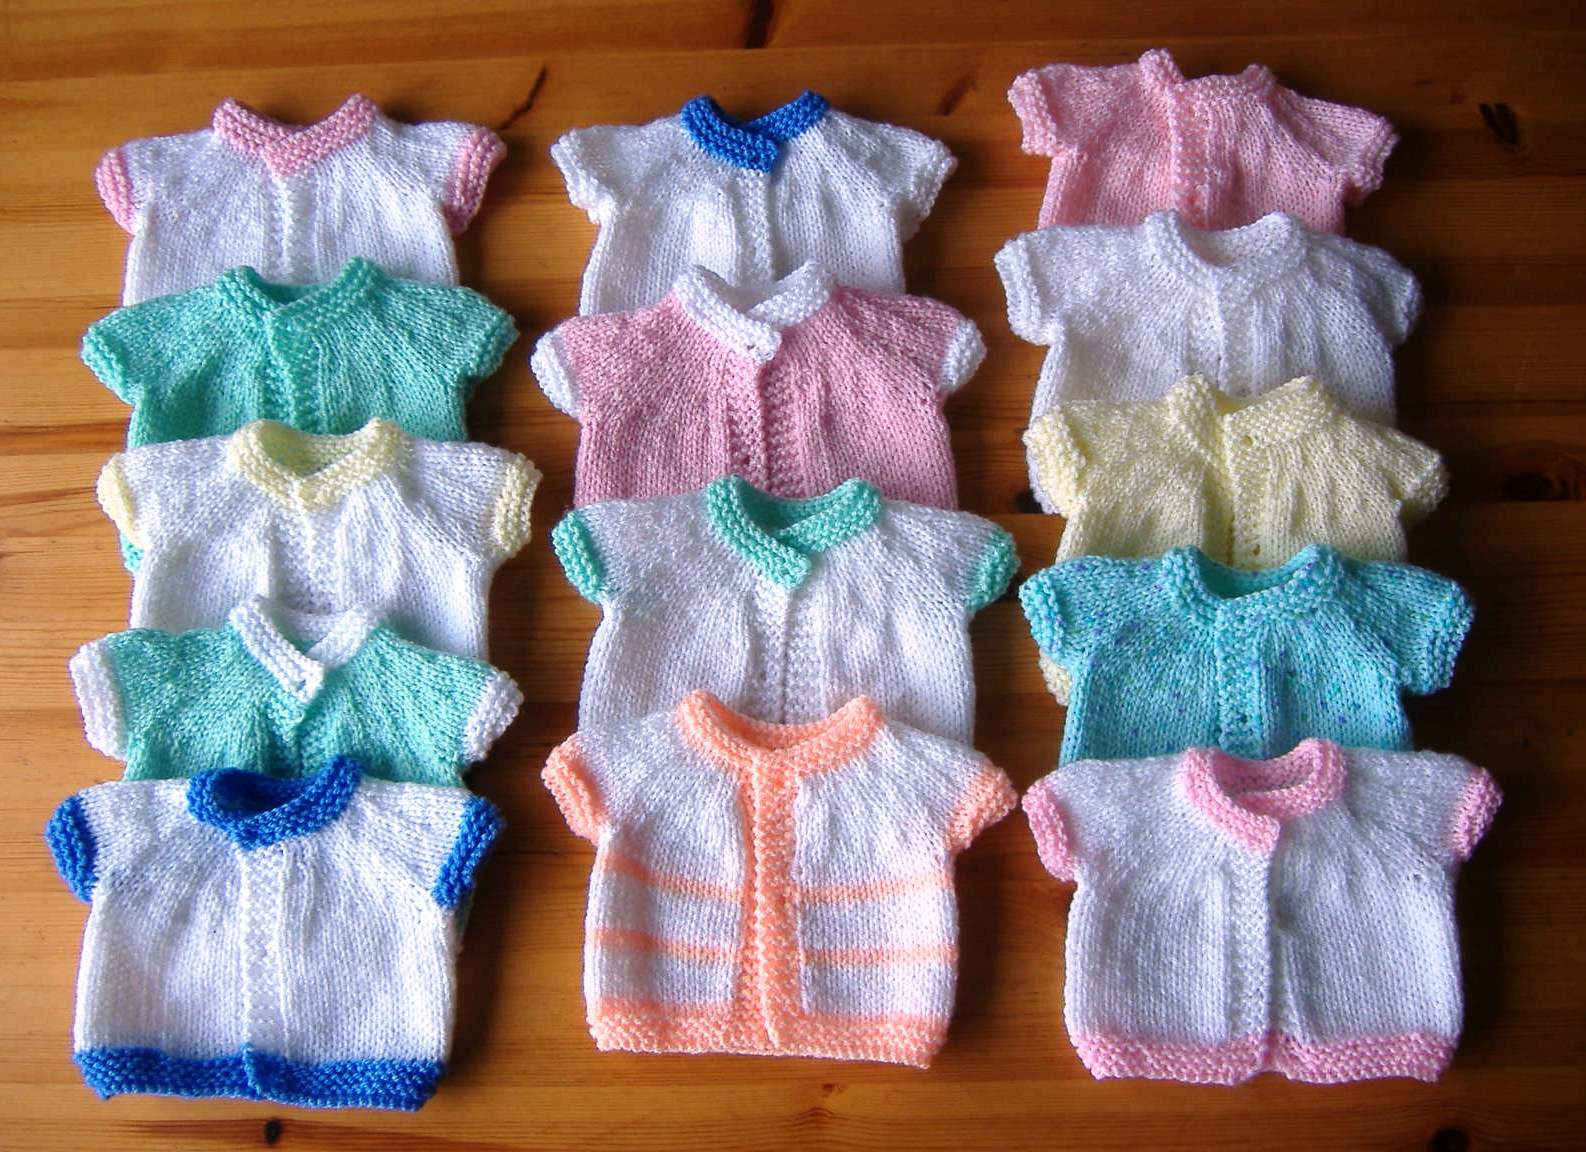 Knitting Patterns For Premature Babies : mariannas lazy daisy days: Loving Hands